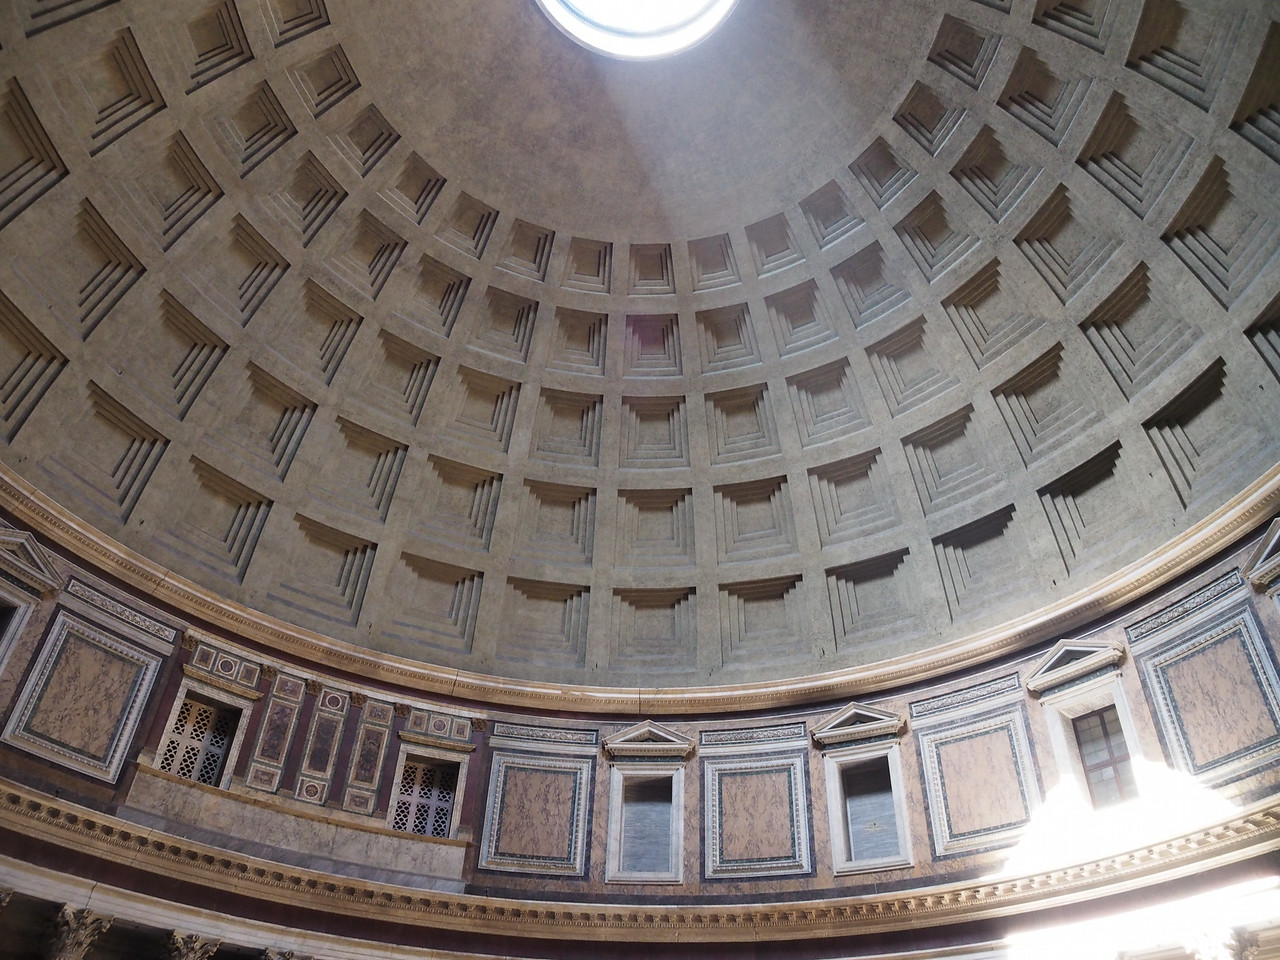 Pantheon - Interior Dome  Largest masonry dome in the world until St. Peter's Cathedral